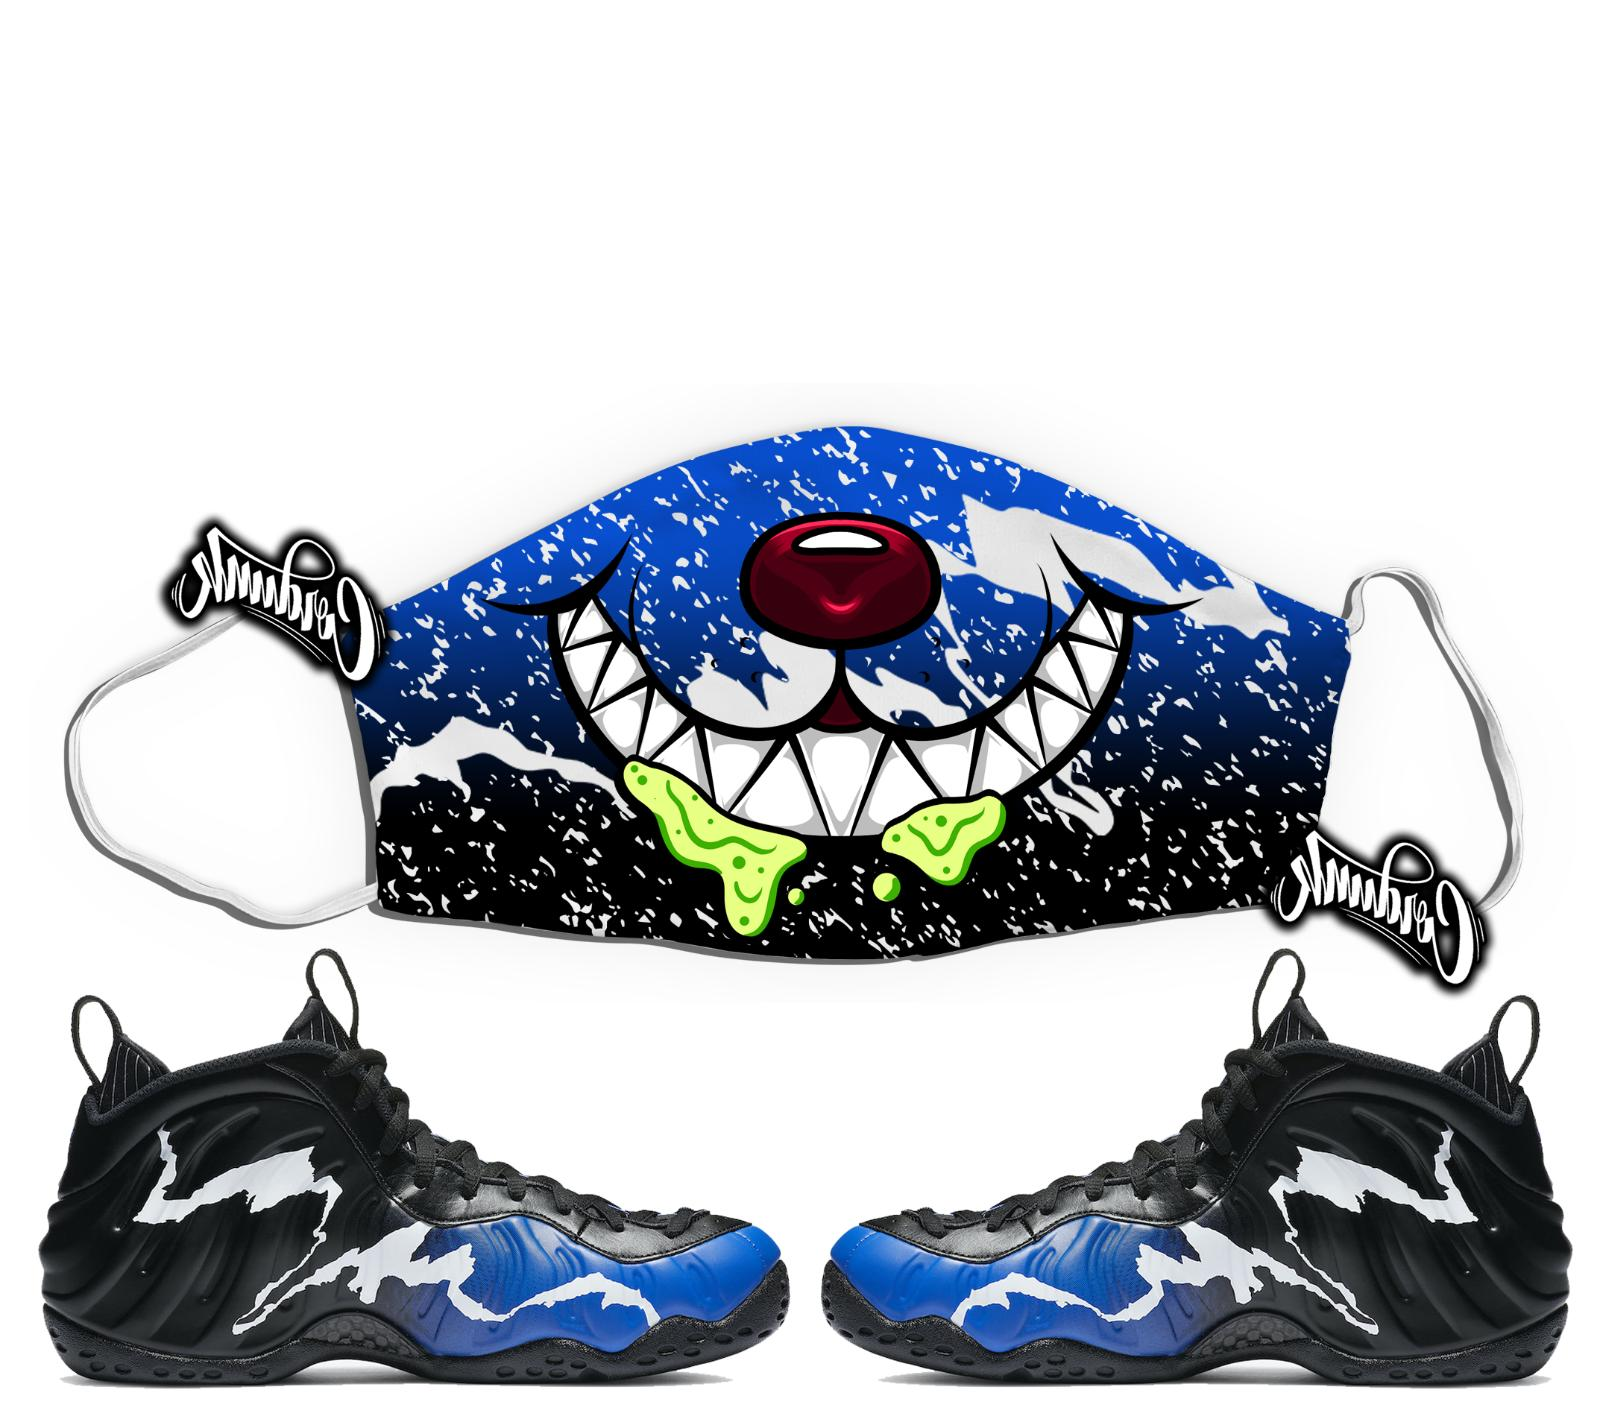 Washable SMILEY face mask for Nike Foamposite Aurora All Sta